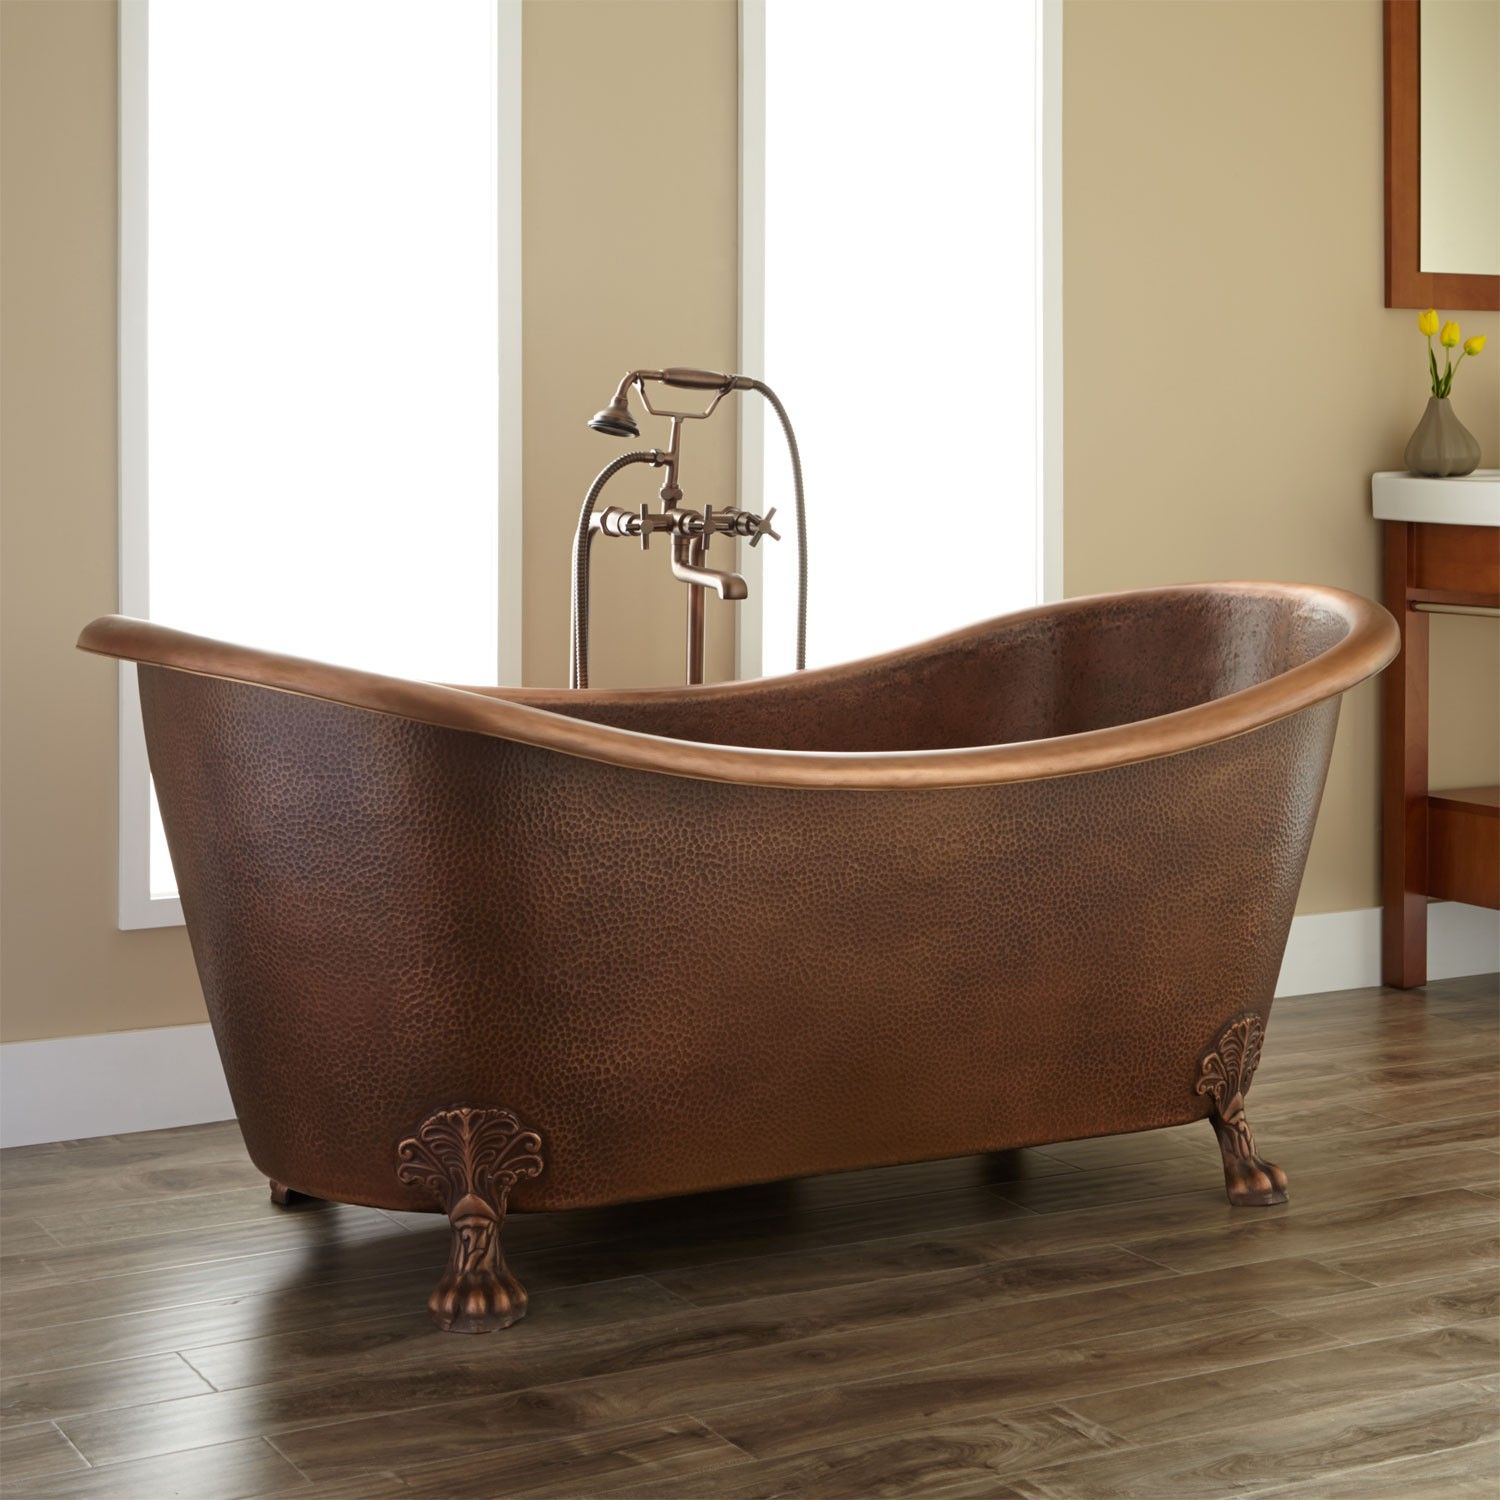 Claw foot tubs bathtubs isabella hammered copper for Claw foot soaker tub